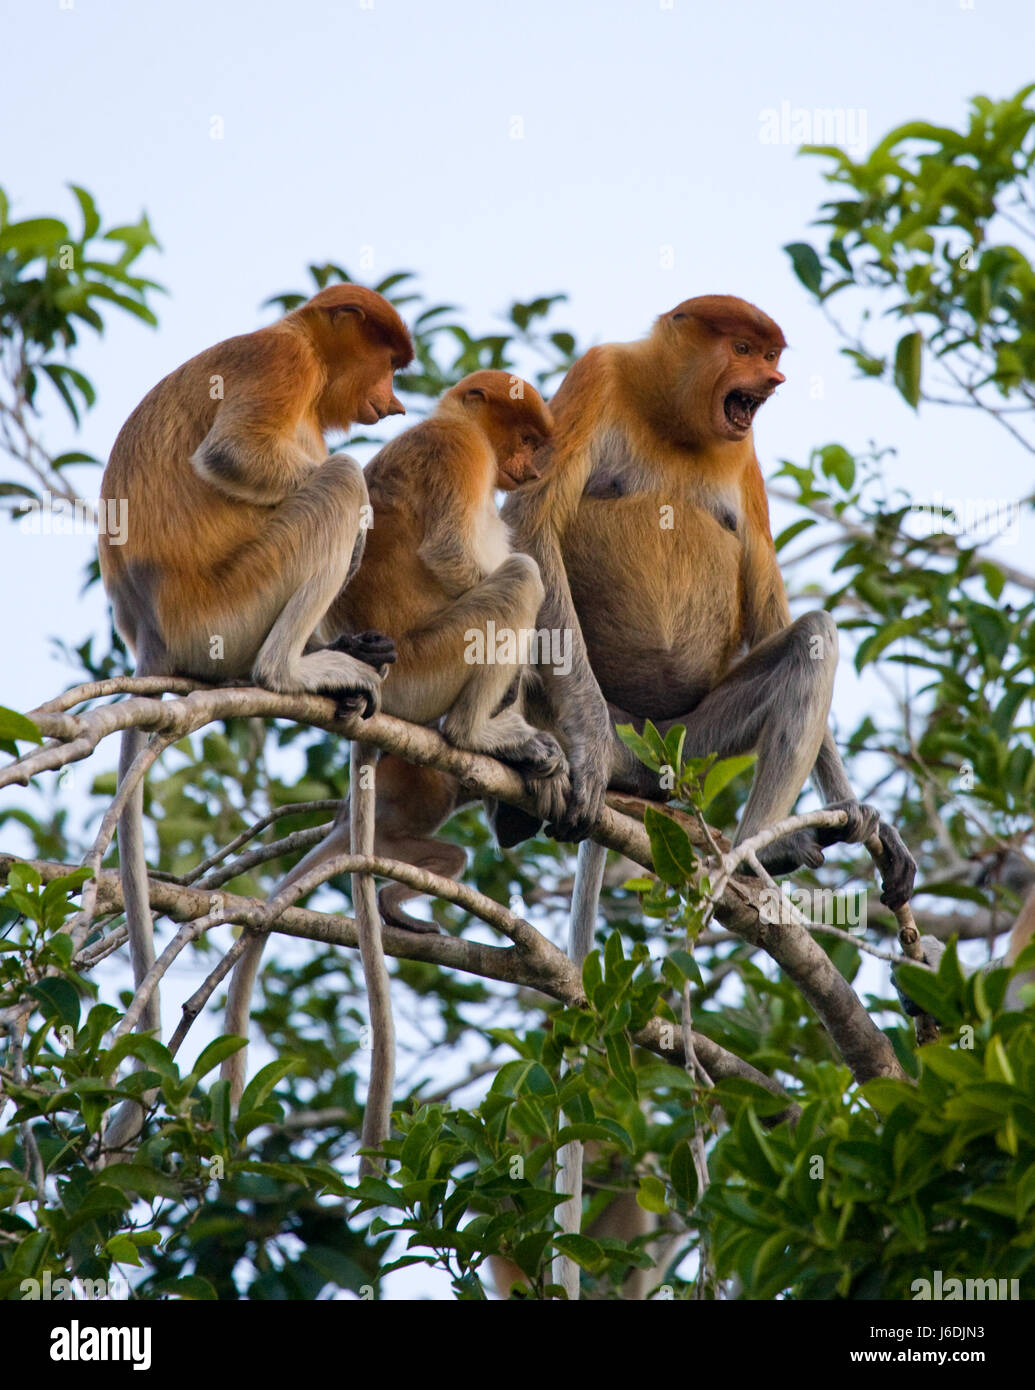 Family of proboscis monkeys sitting in a tree in the jungle. Indonesia. The island of Borneo (Kalimantan). An excellent - Stock Image